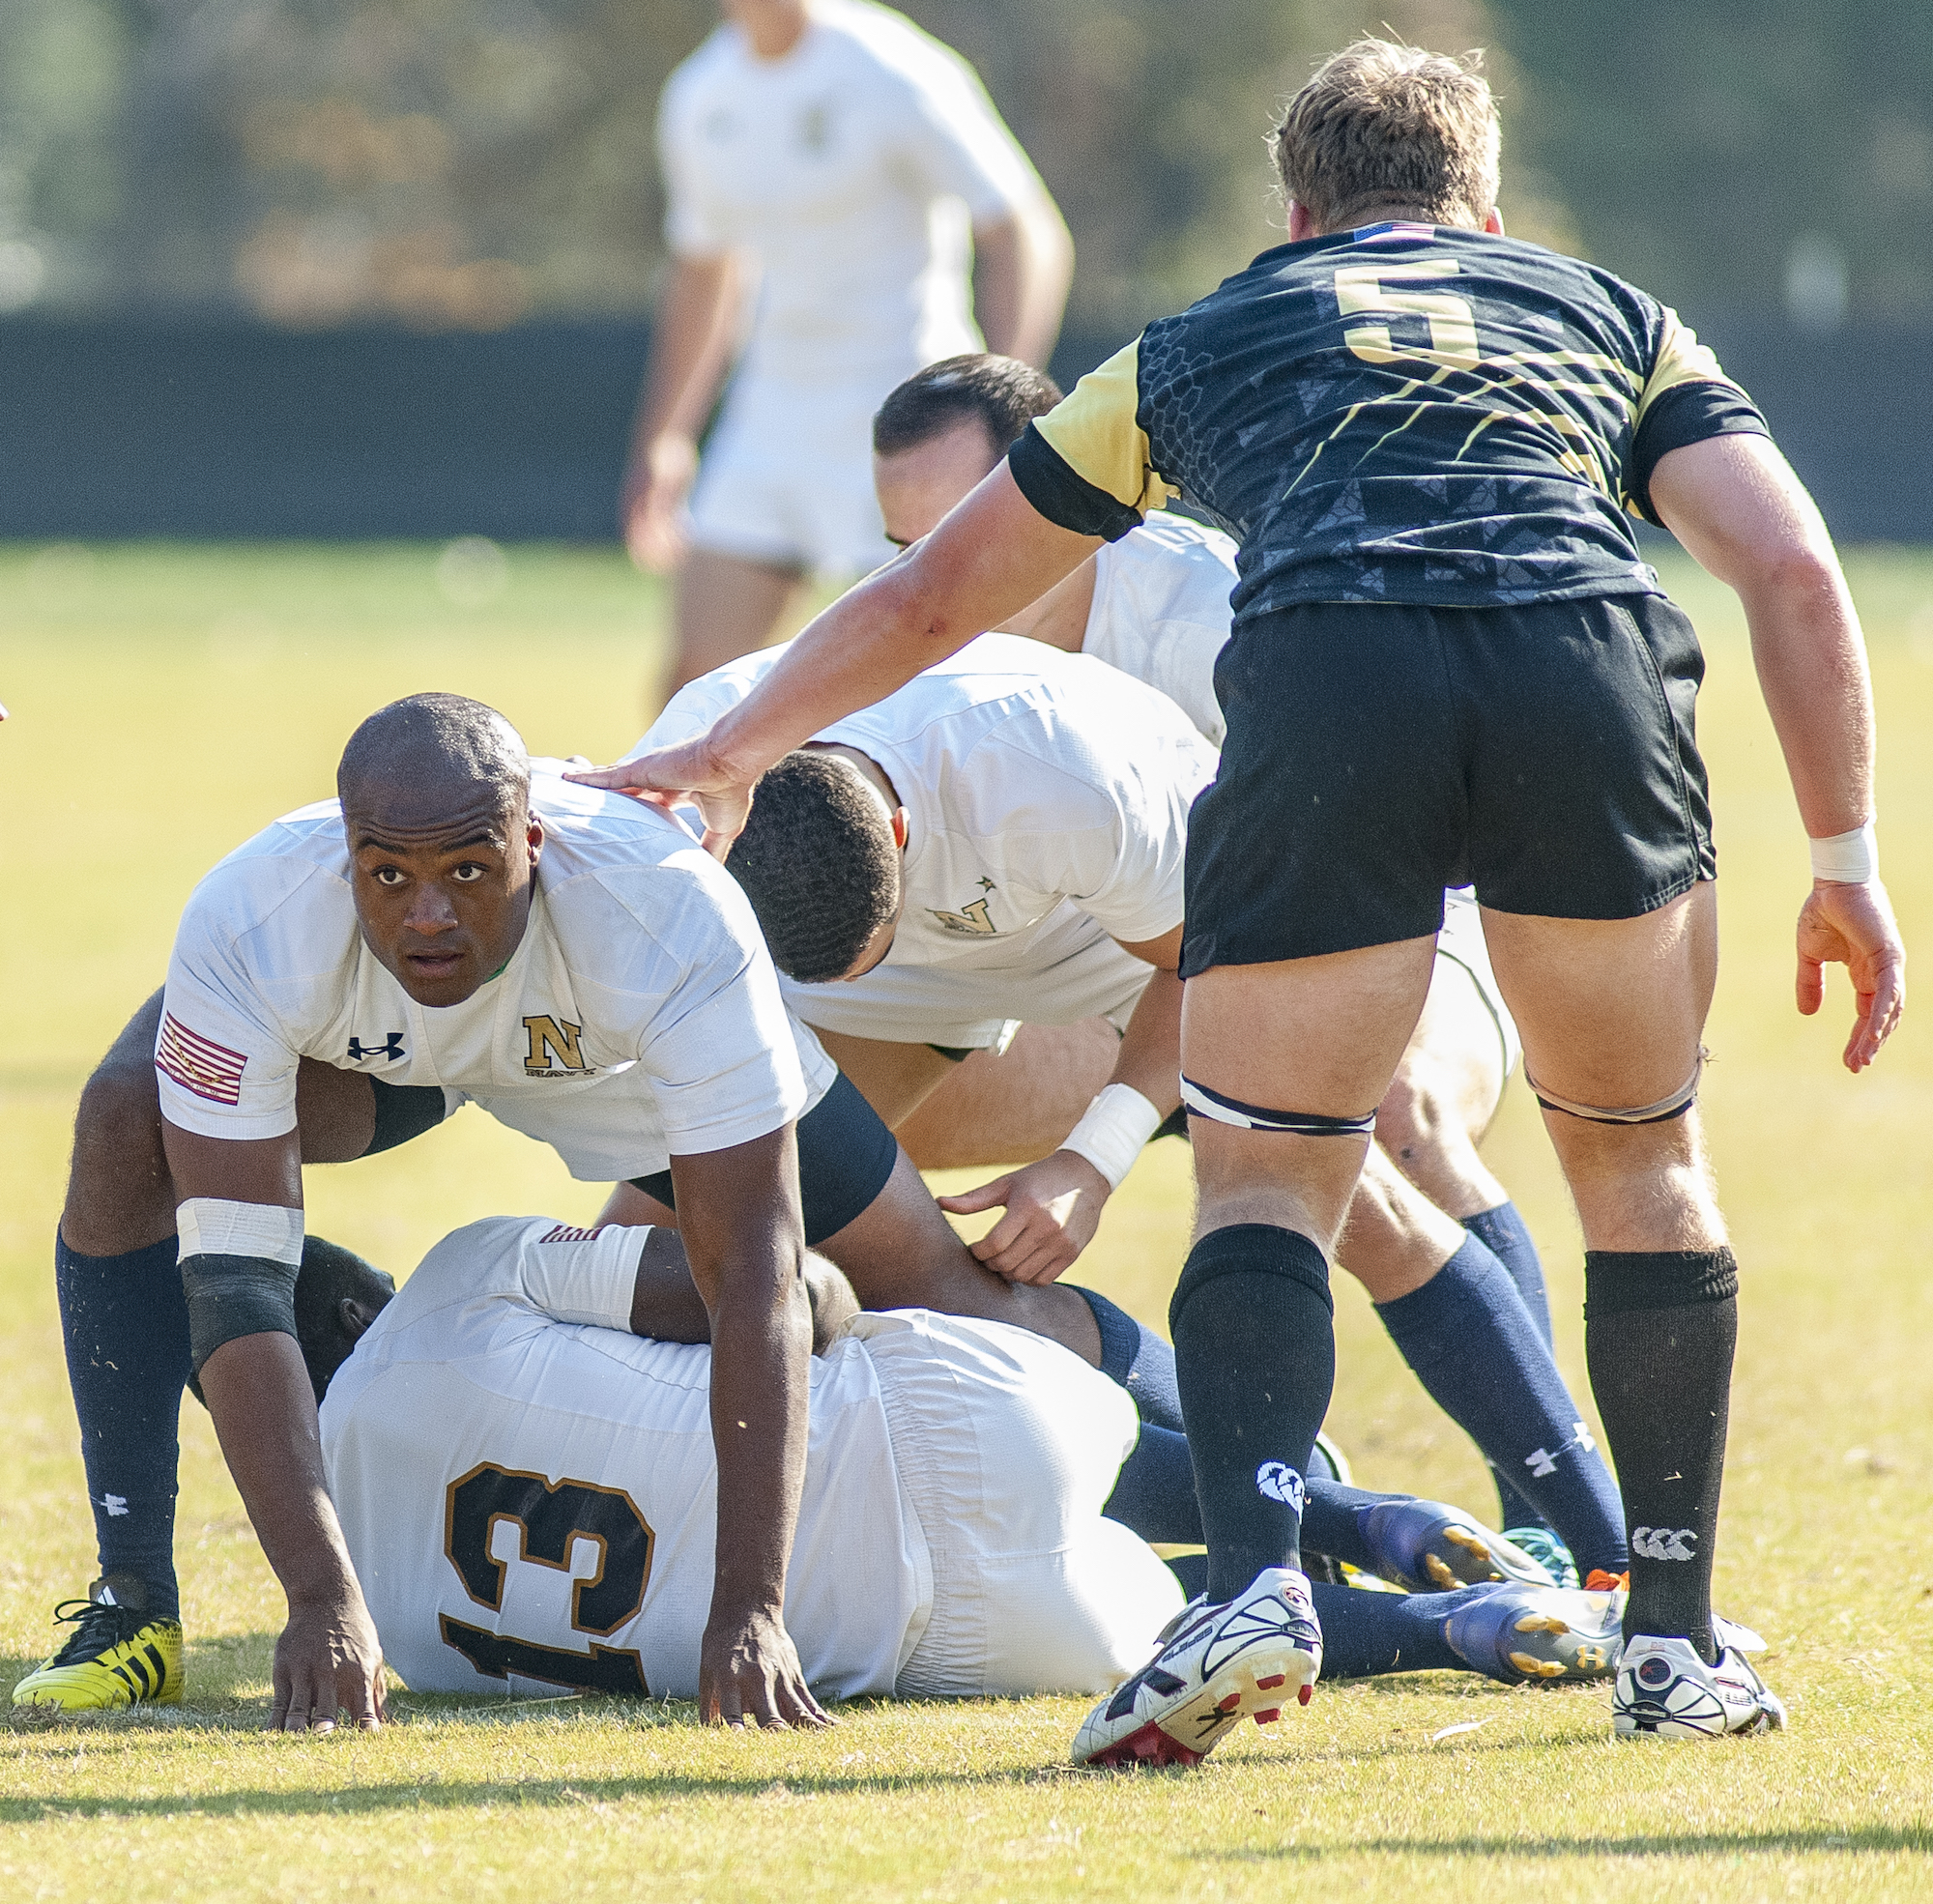 College Rugby Lindenwood v Navy Fall 2016. Colleen McCloskey photo